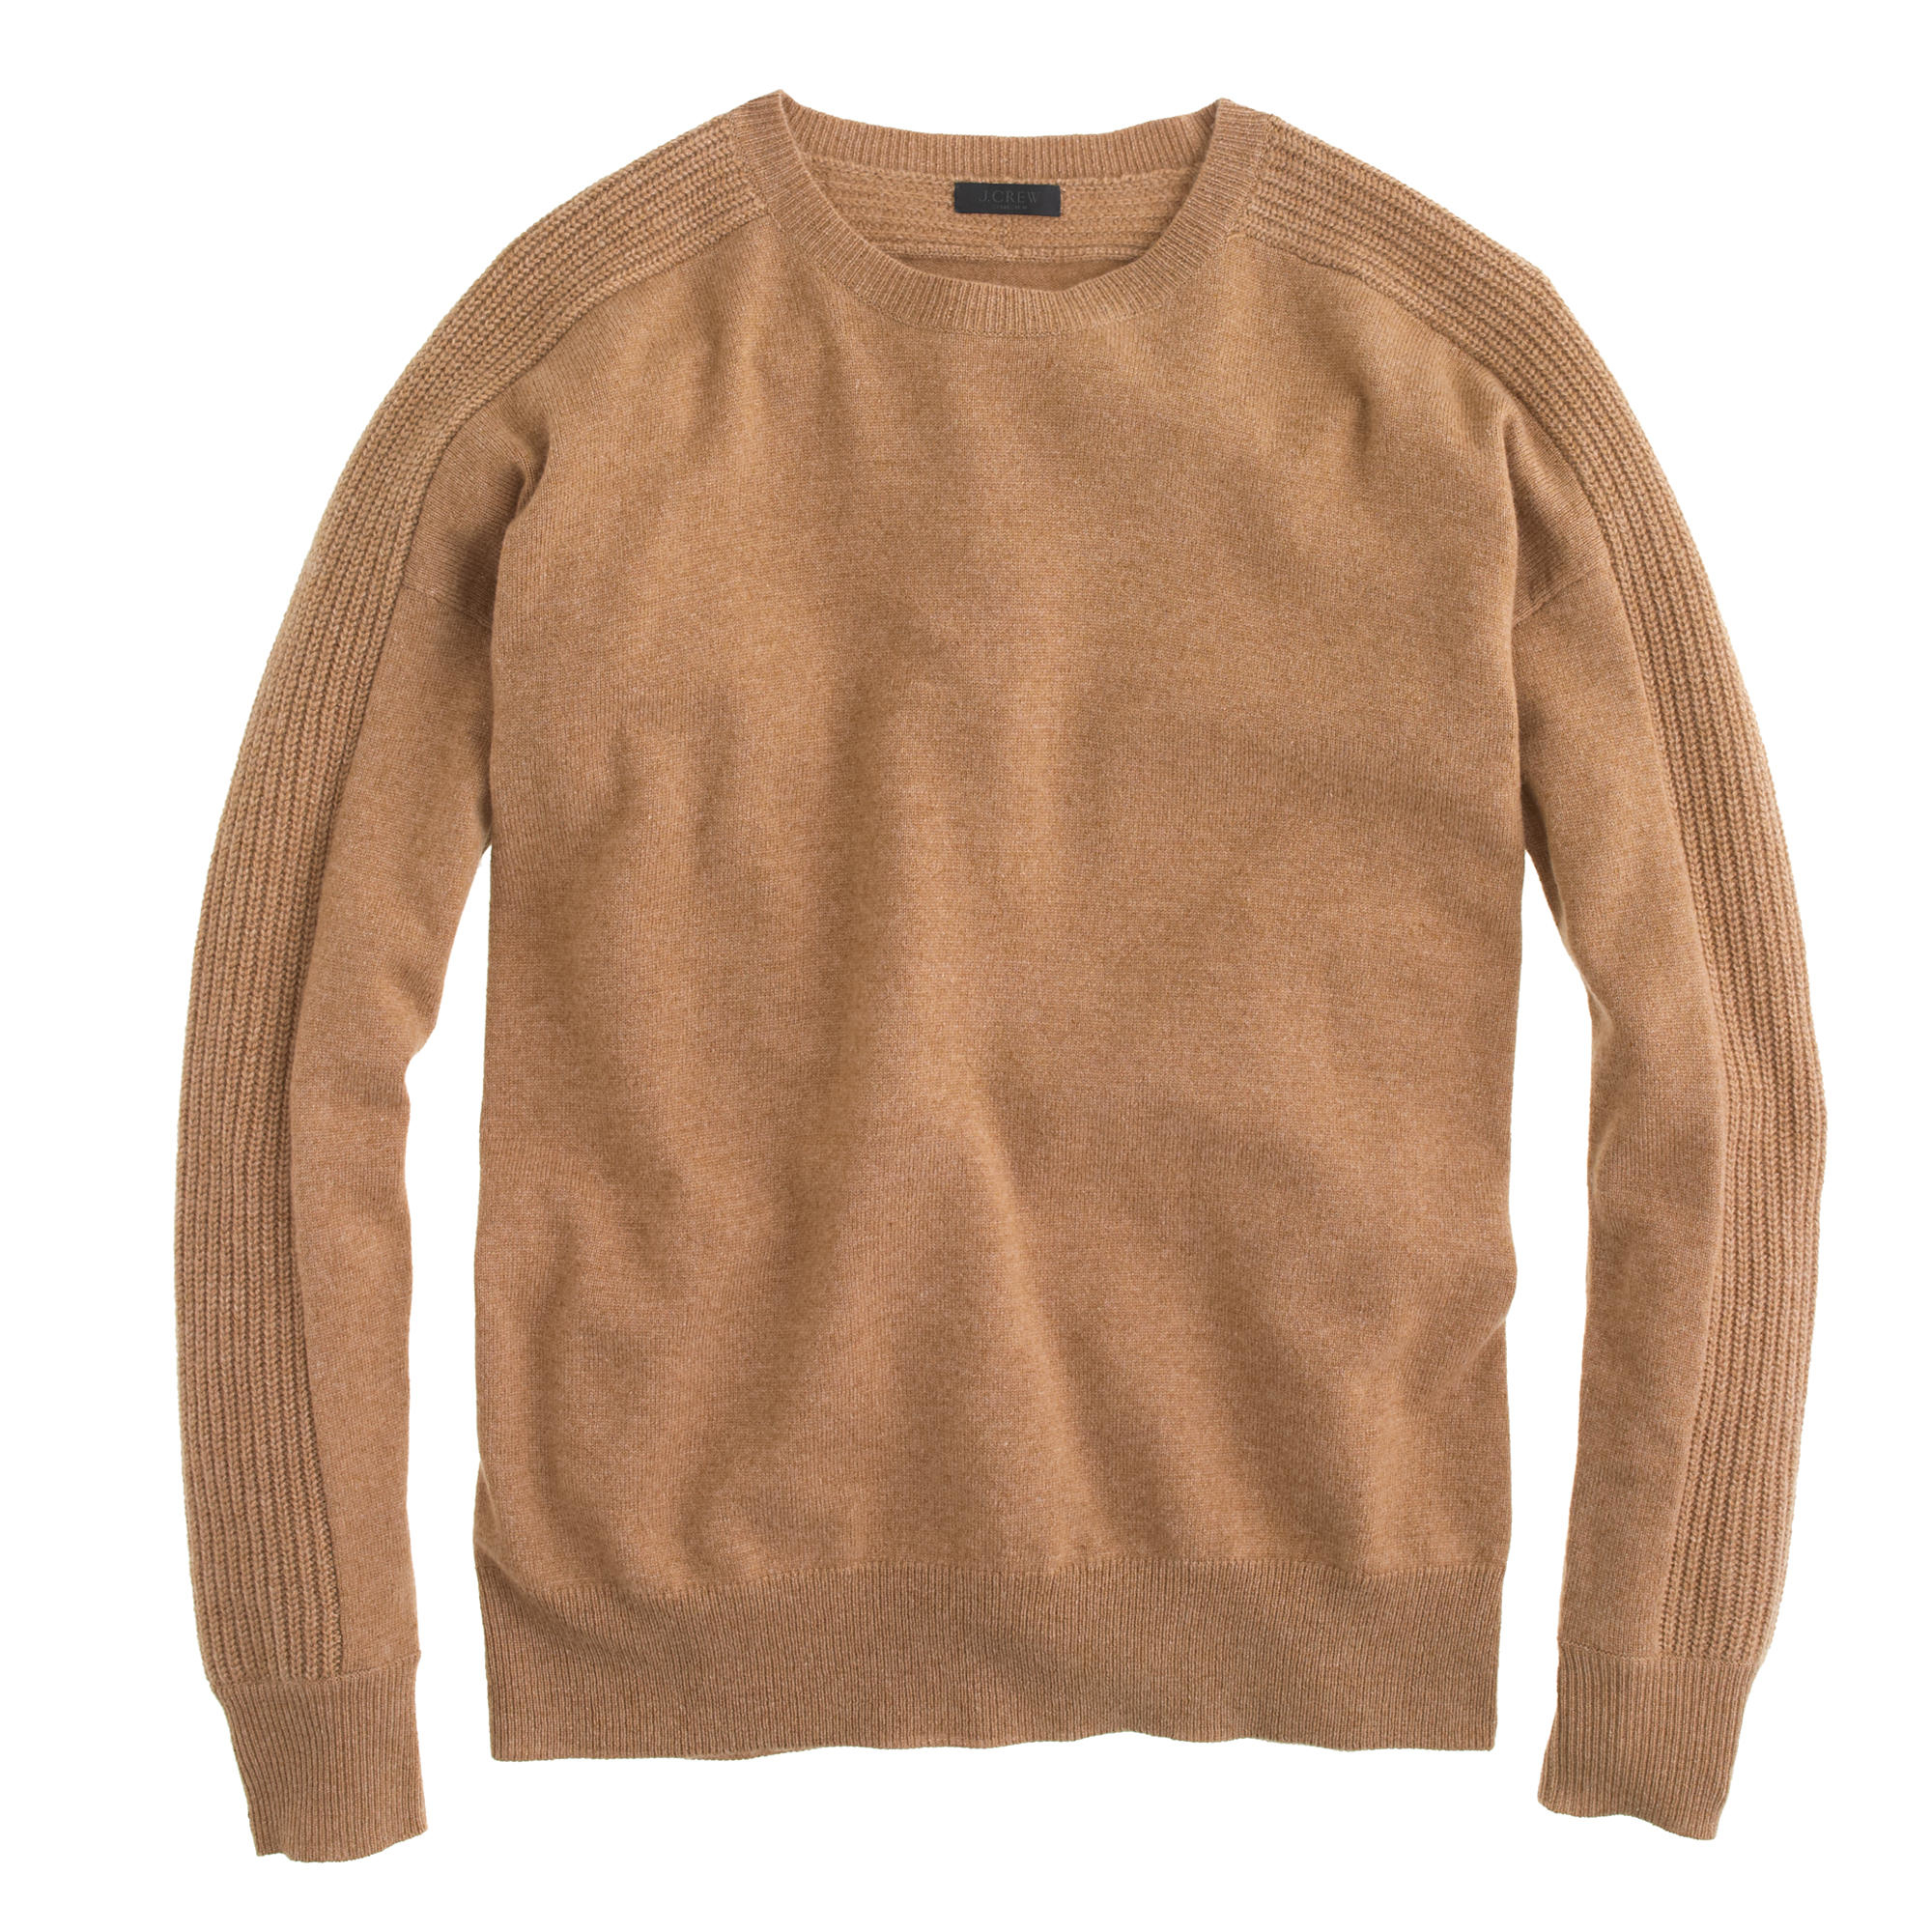 J.crew Collection Cashmere Textured Boyfriend Sweater in Brown | Lyst